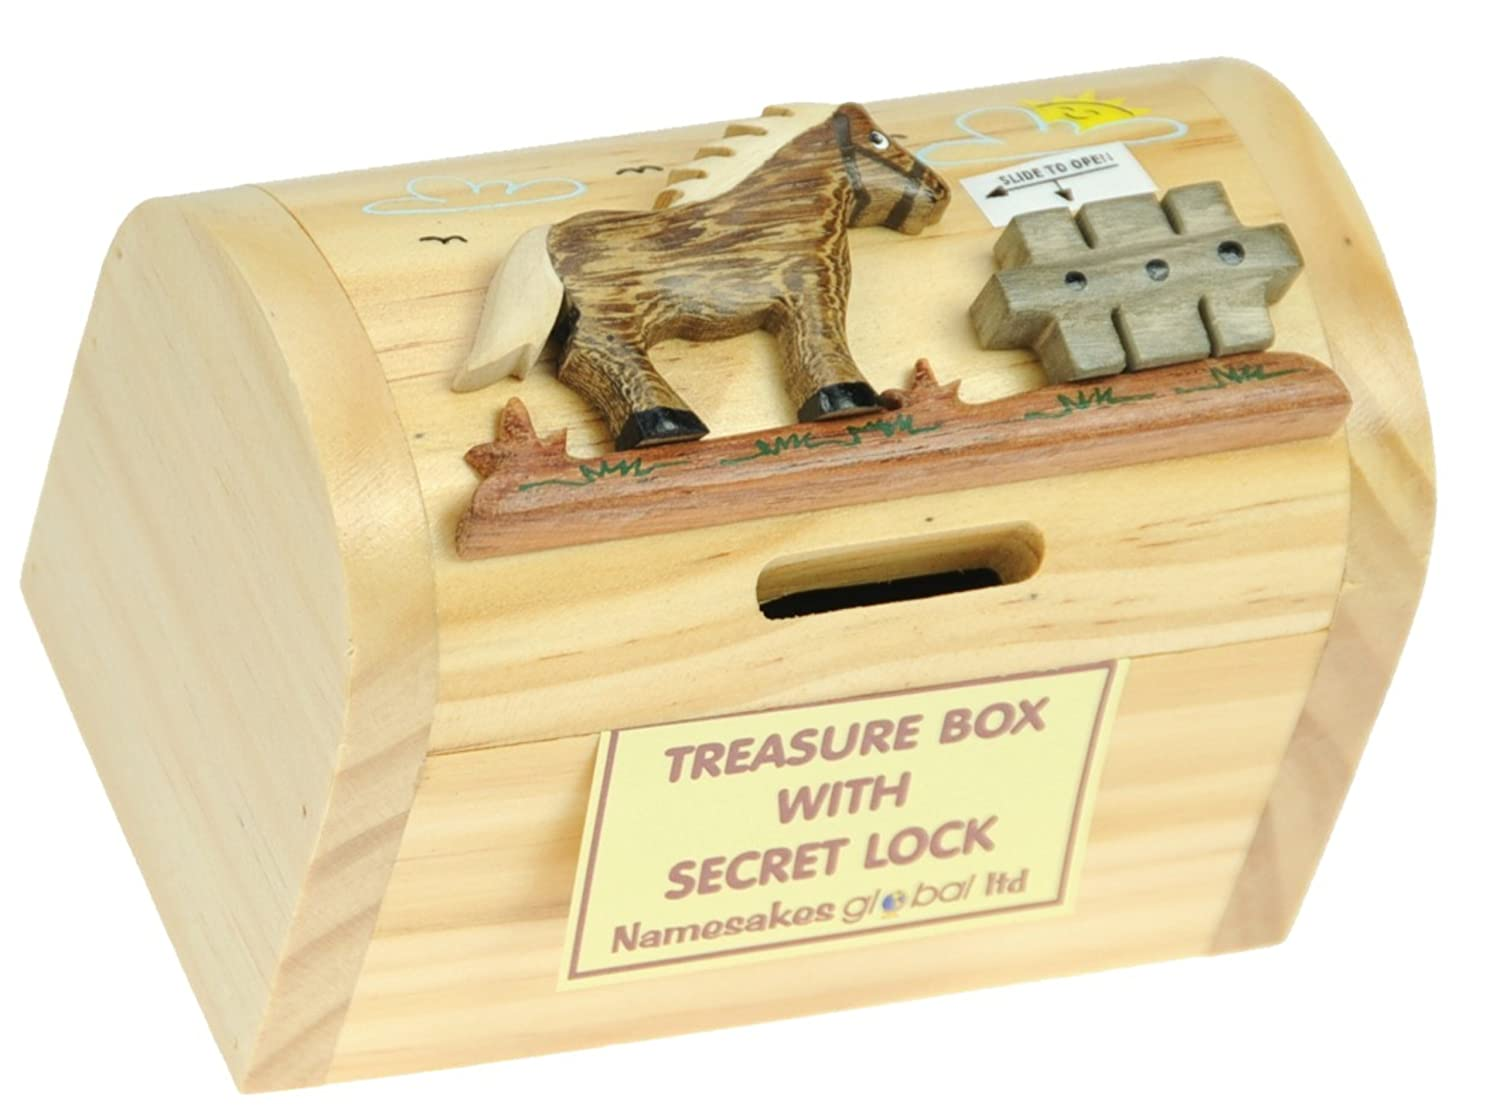 Namesakes Piggy Banks For Kids Horse Money Box With Secret Lock Traditional Wooden Toys For Children Size 12 X 9 X 7cm